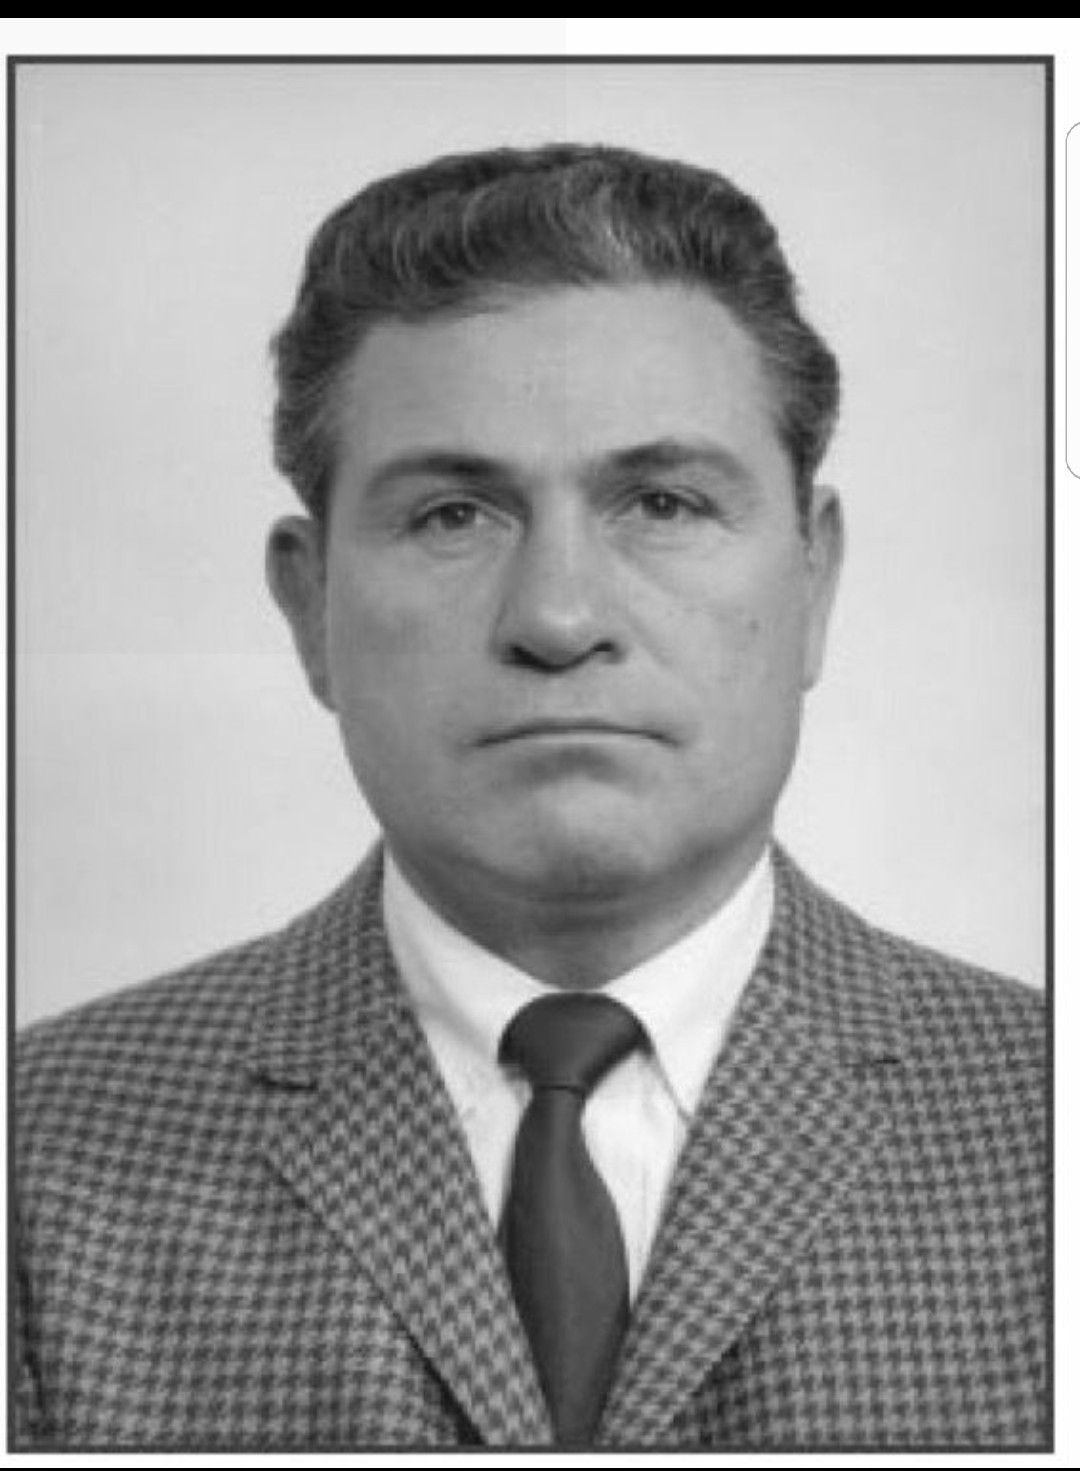 Marshall caifano chicago outfit chicago mob crime family